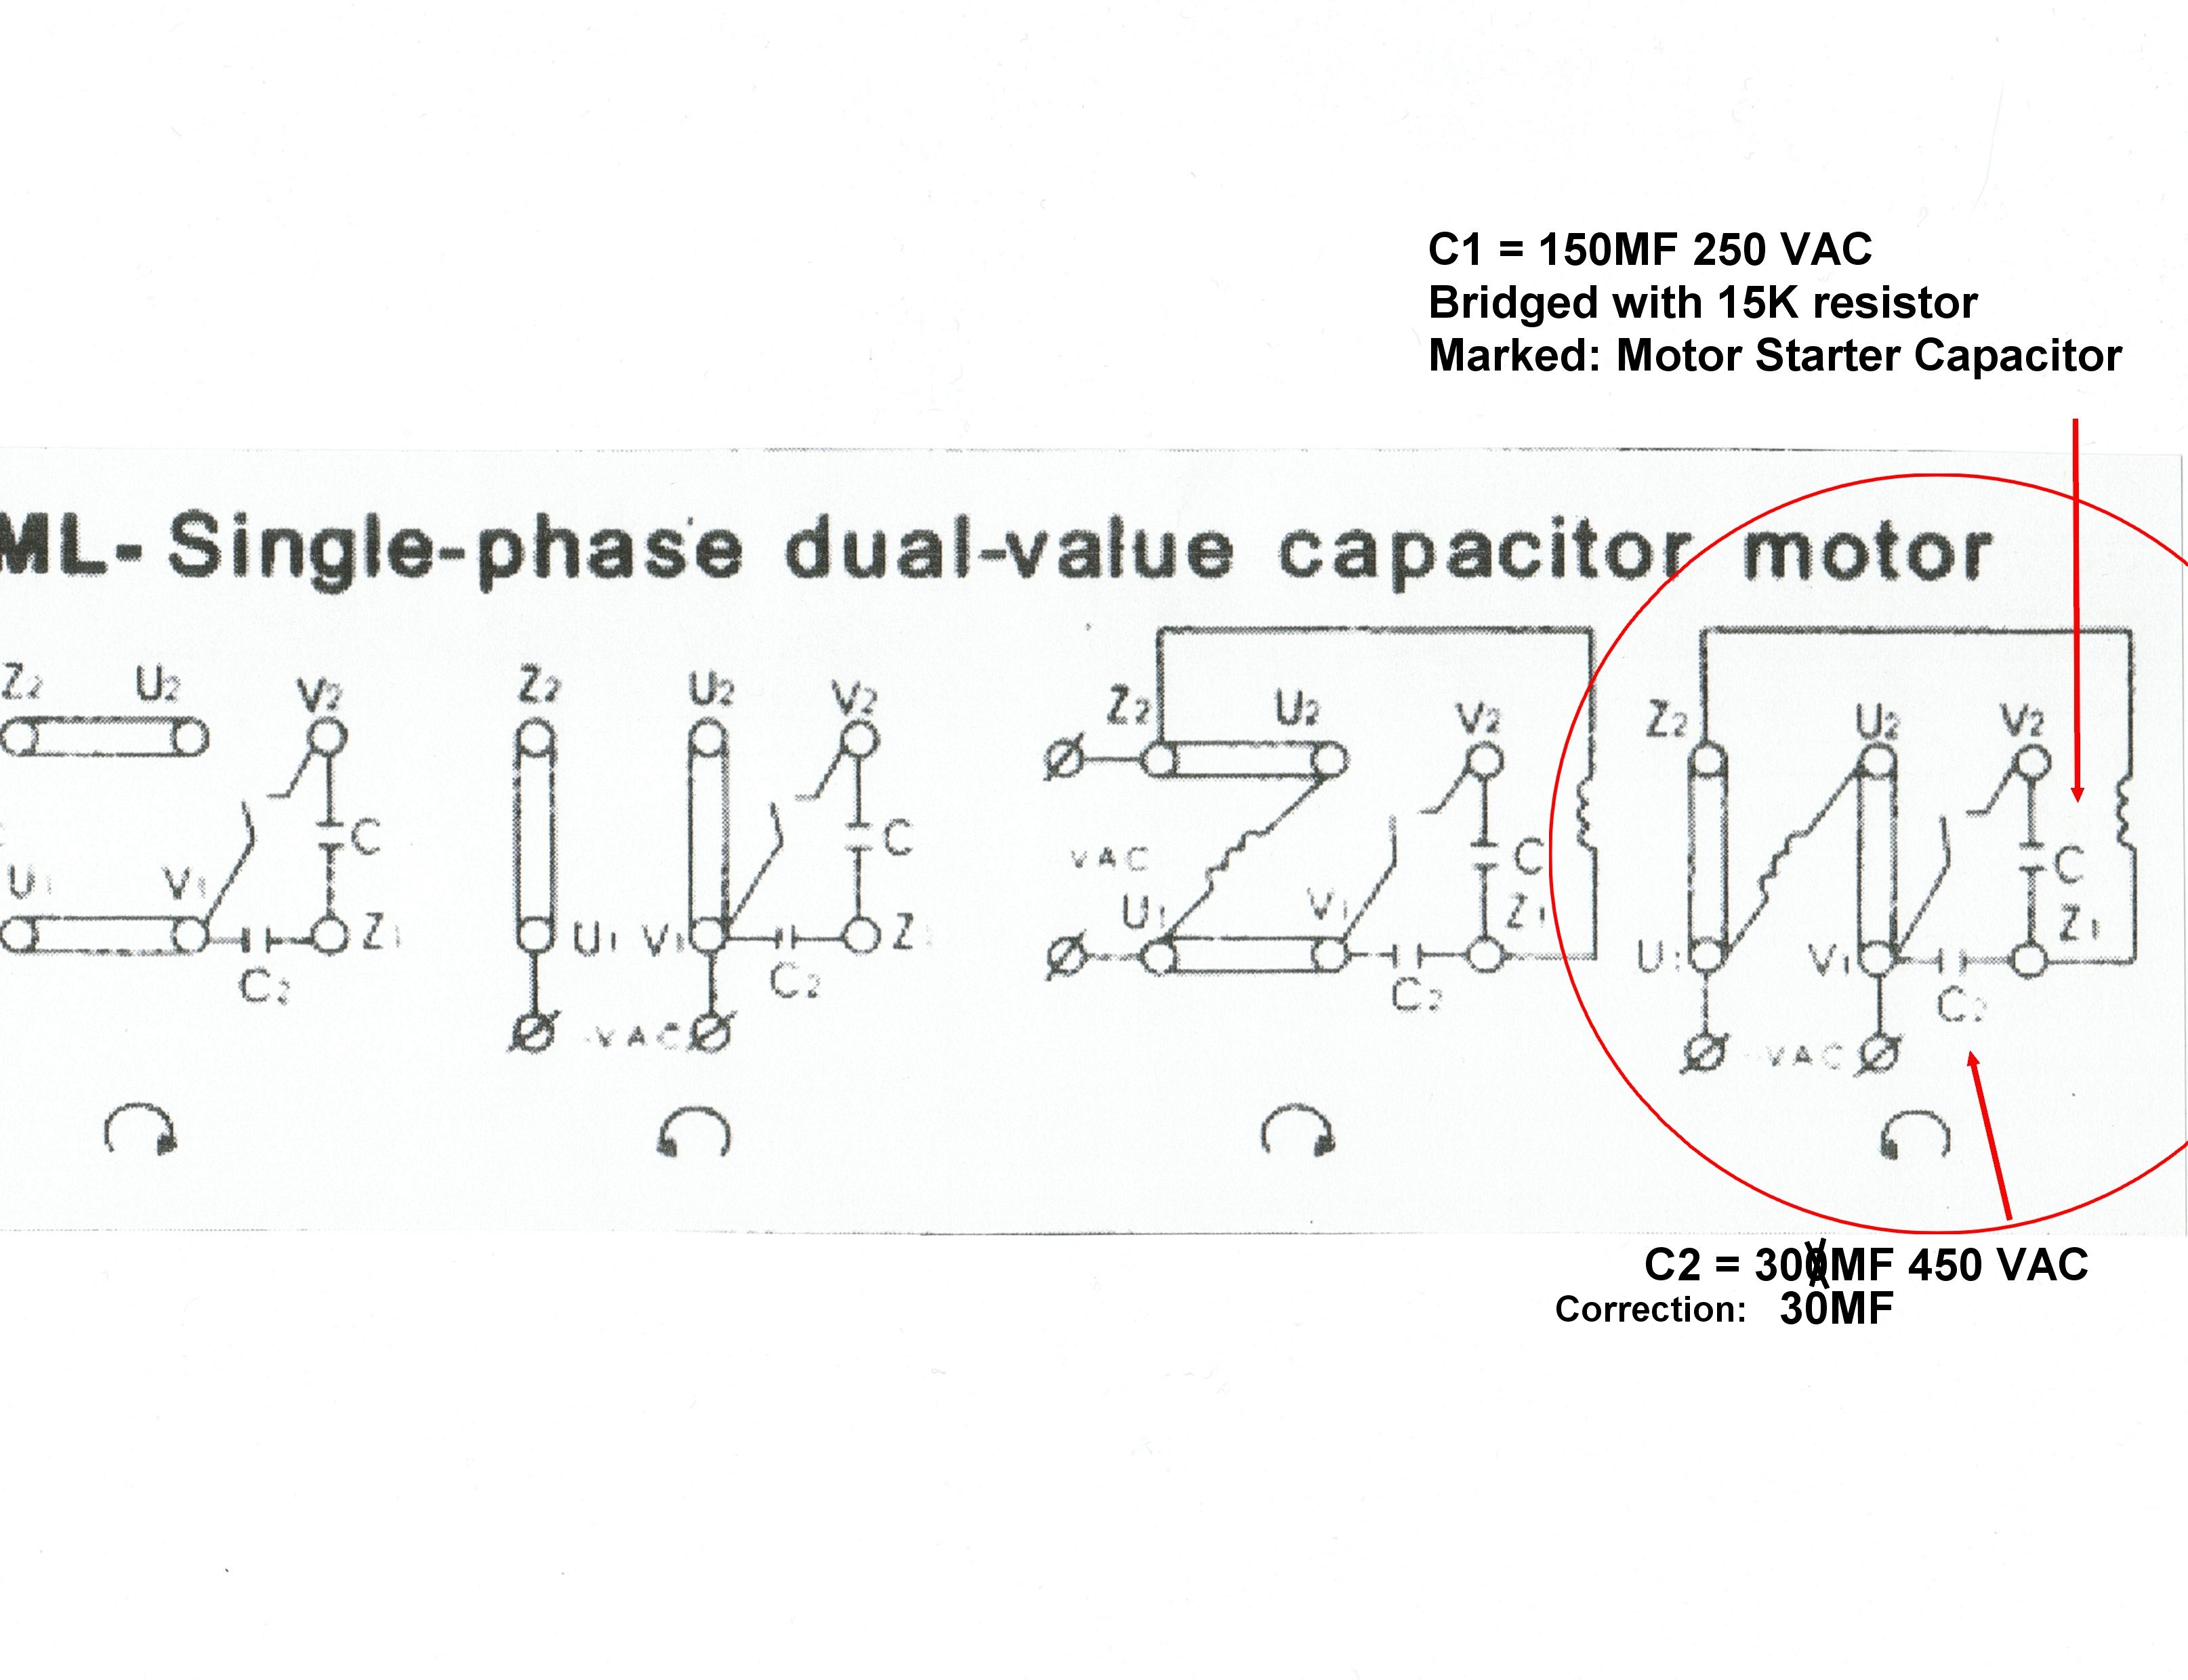 v phase wiring diagram v wiring diagrams saw motor03 v phase wiring diagram saw motor03